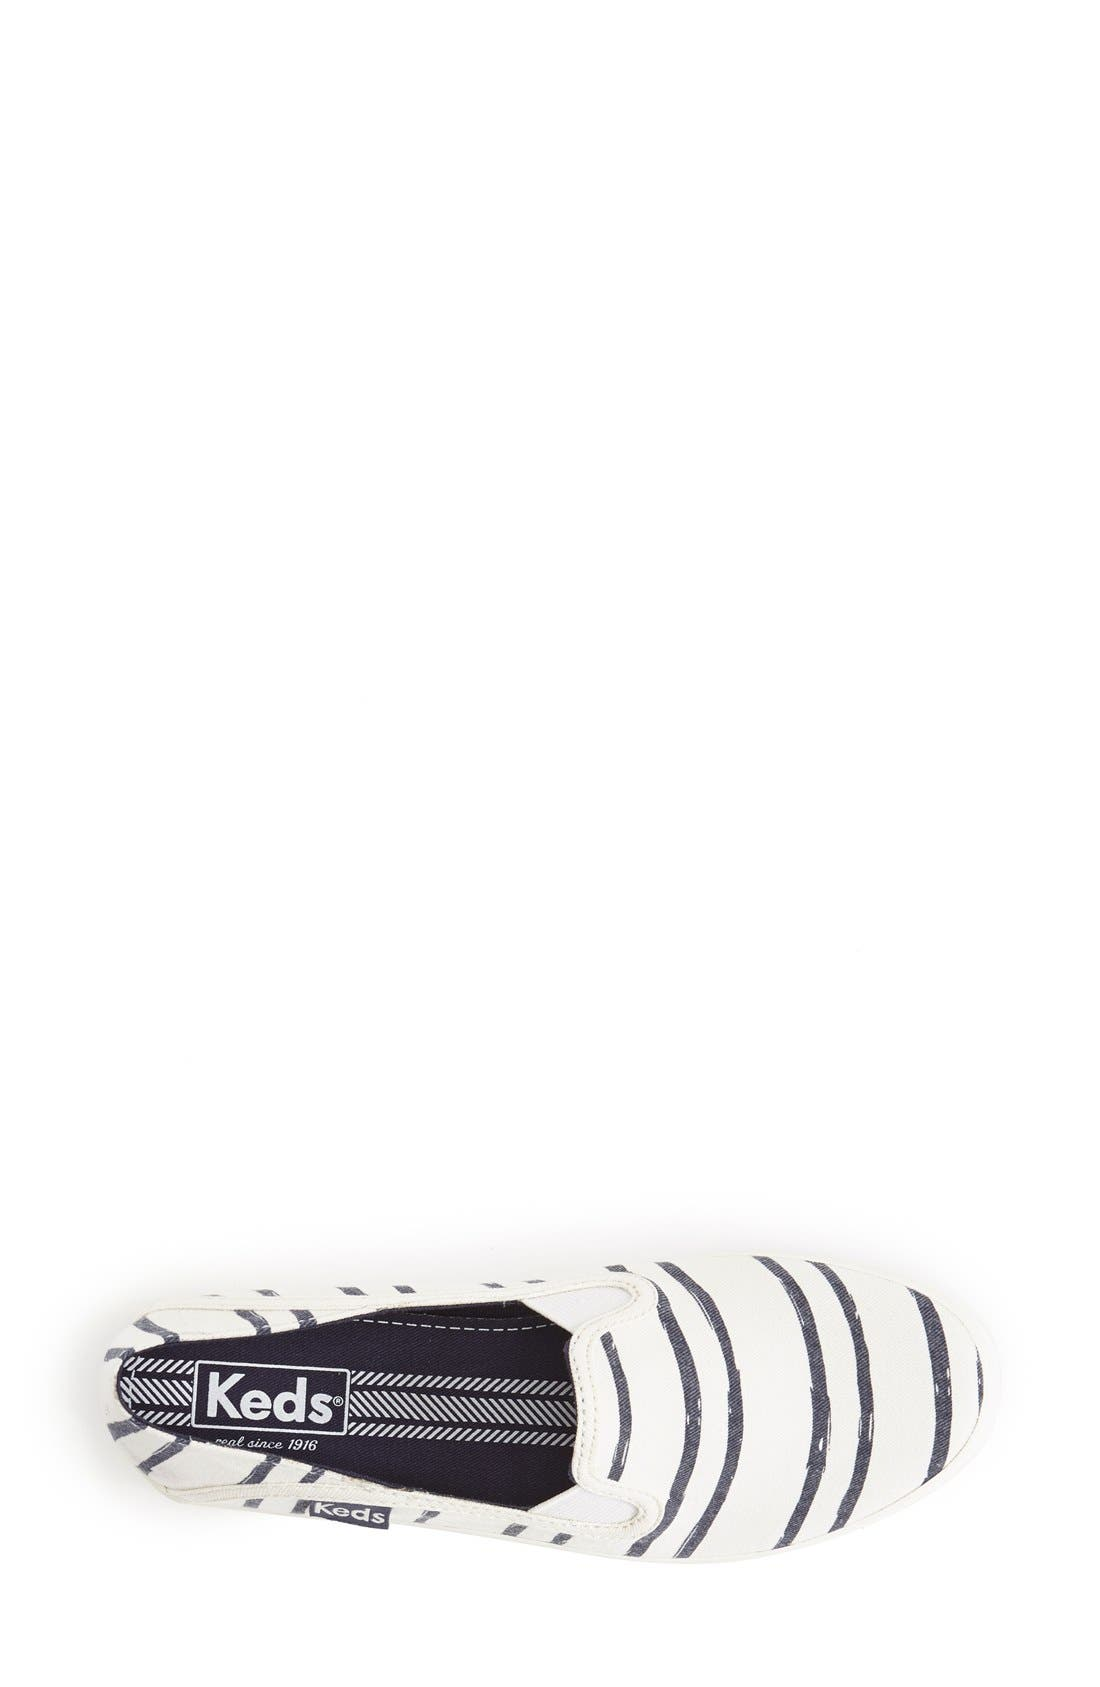 Alternate Image 3  - Keds® 'Crashback - Washed Beach Stripe' Slip-On Sneaker (Women)